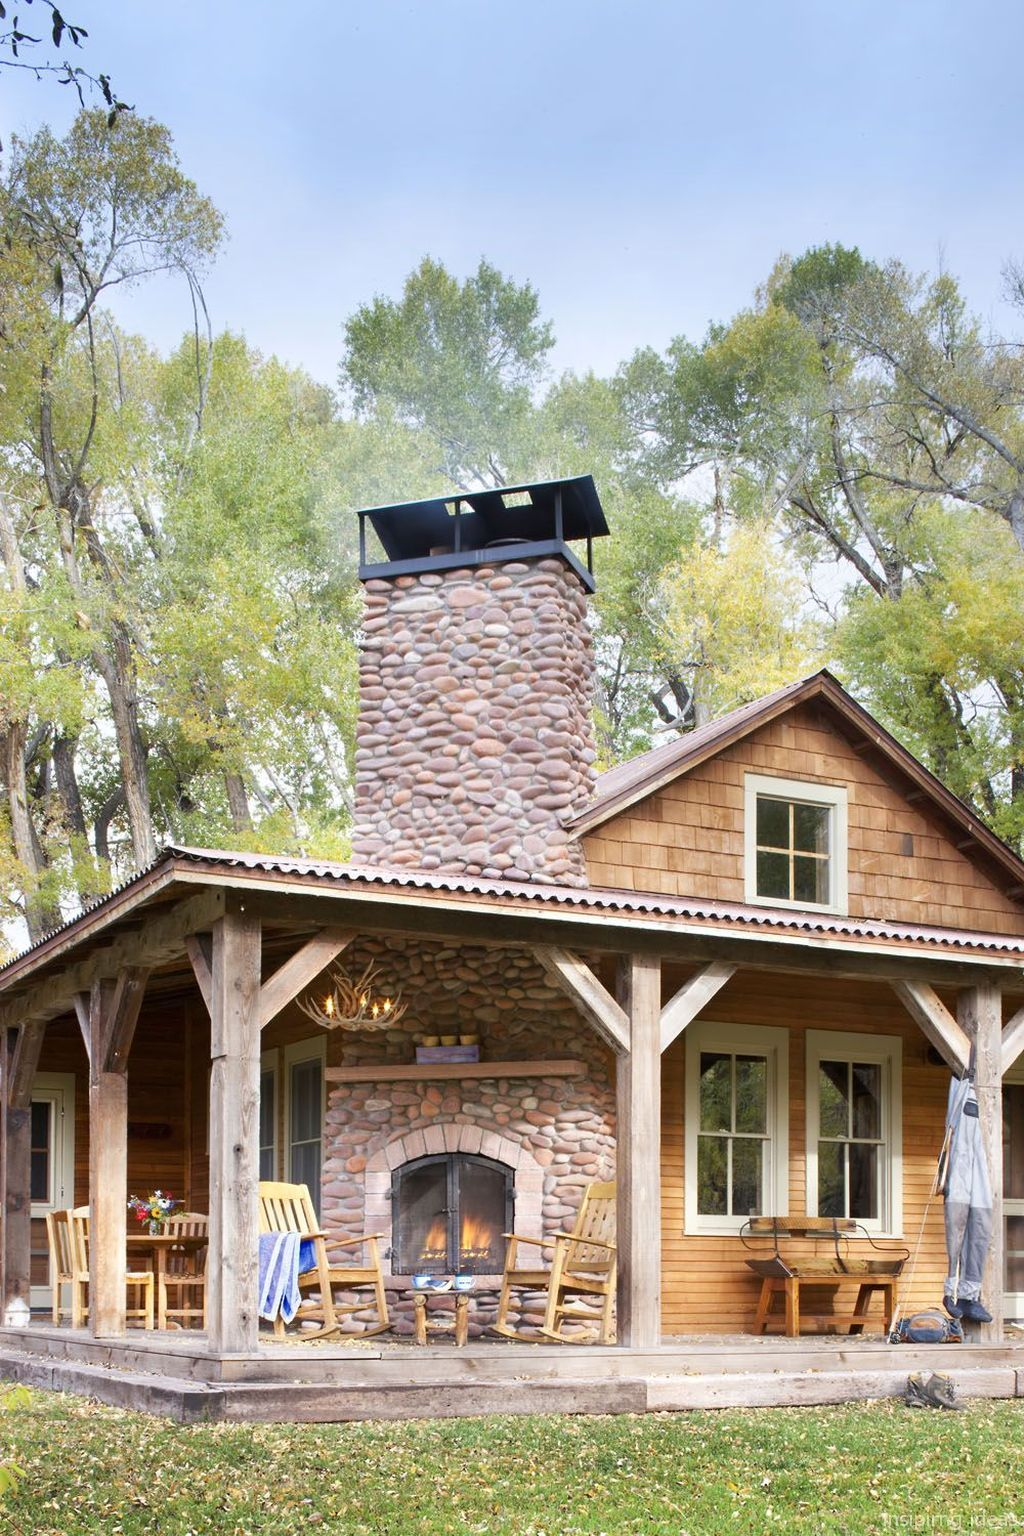 Gorgeous 135 Rustic Log Cabin Homes Design Ideas Https://roomaniac.com/